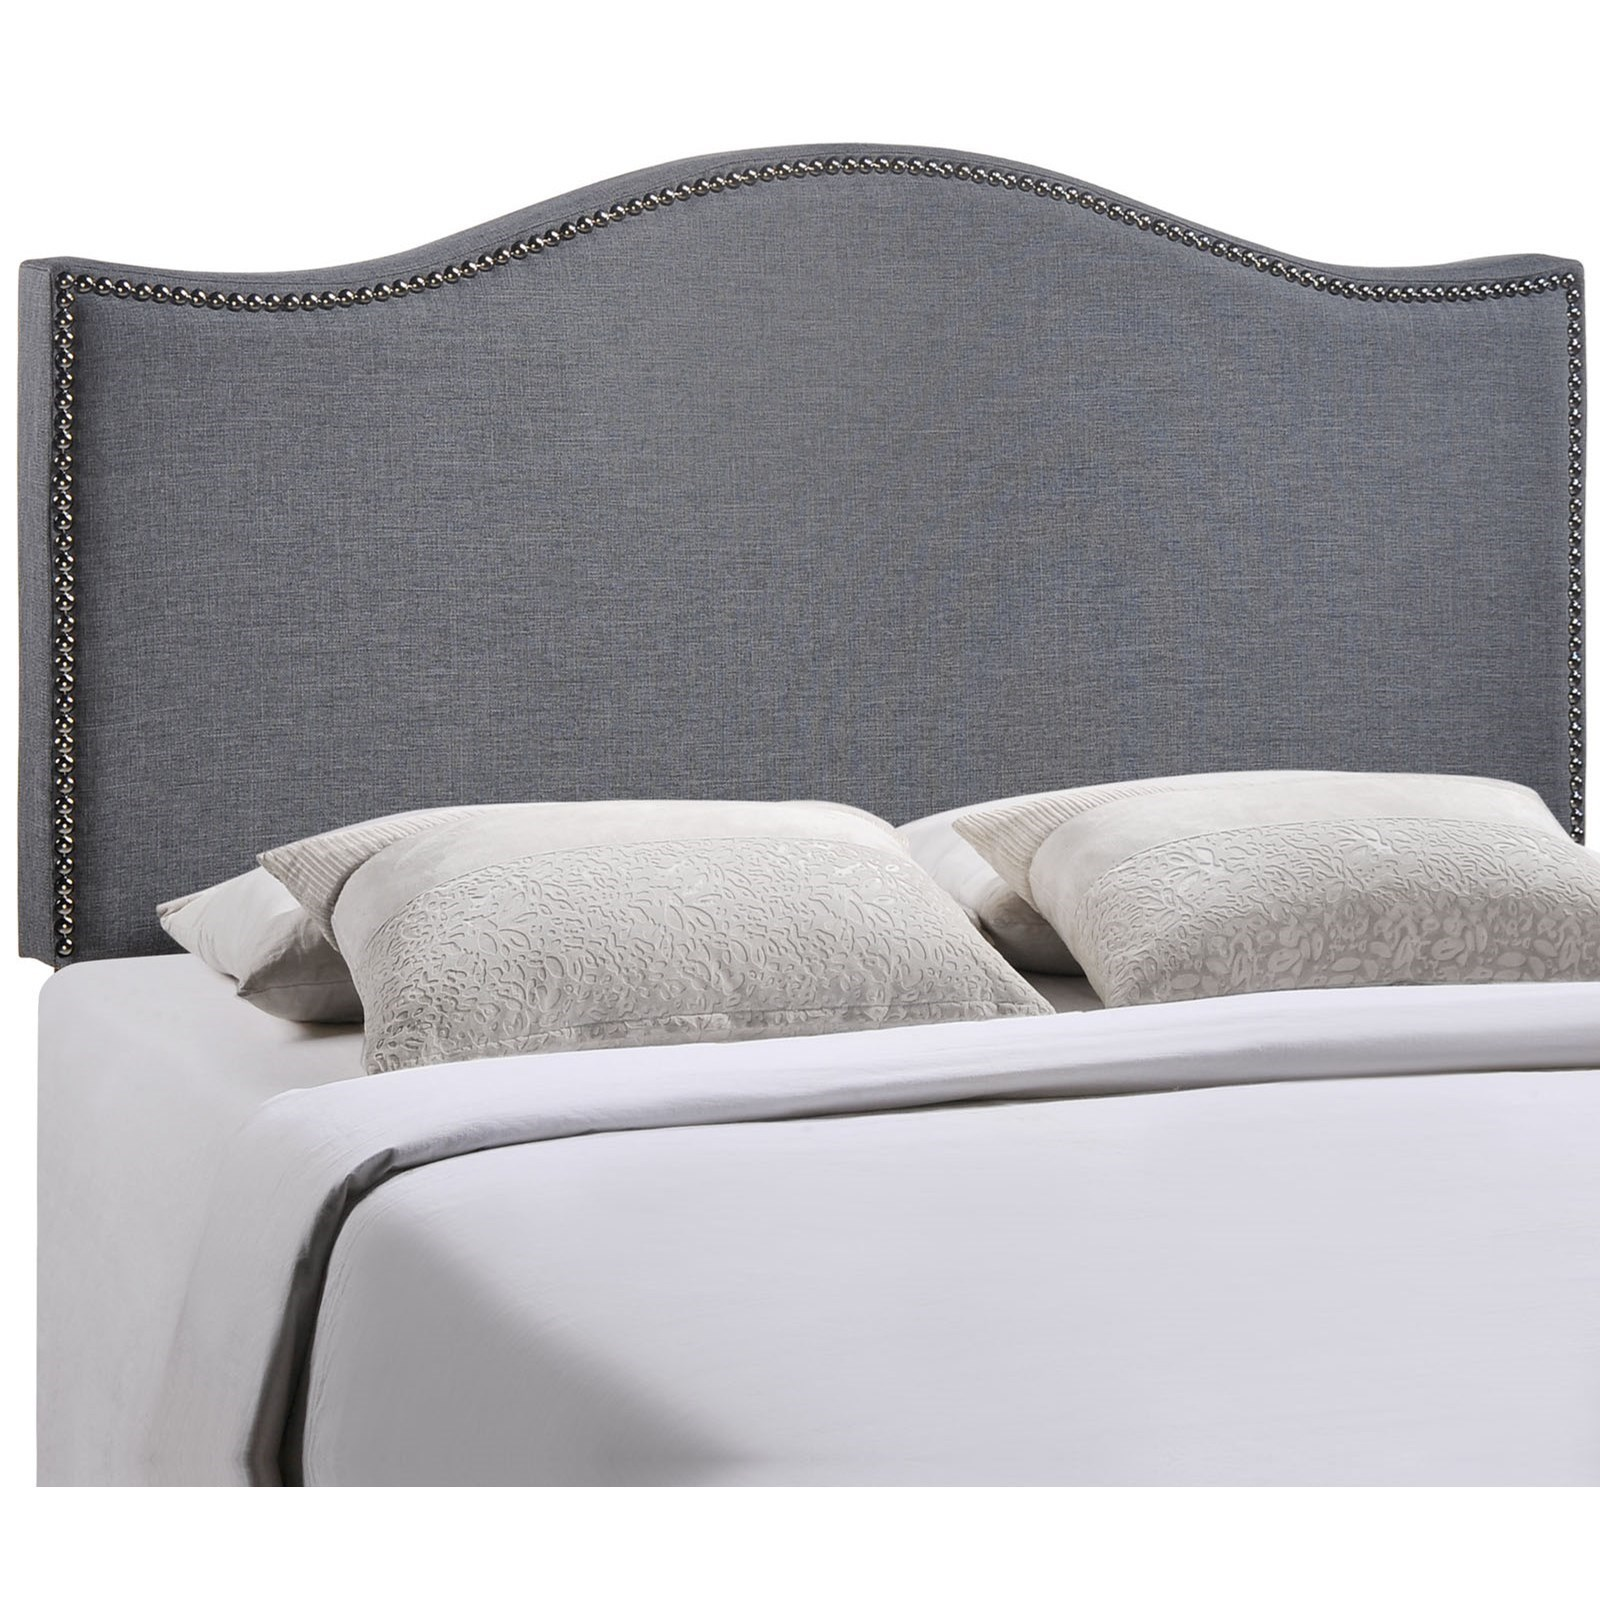 Making An Upholstered Headboard With Nailhead Trim Curl Queen Nailhead Upholstered Headboard By Modway At Value City Furniture